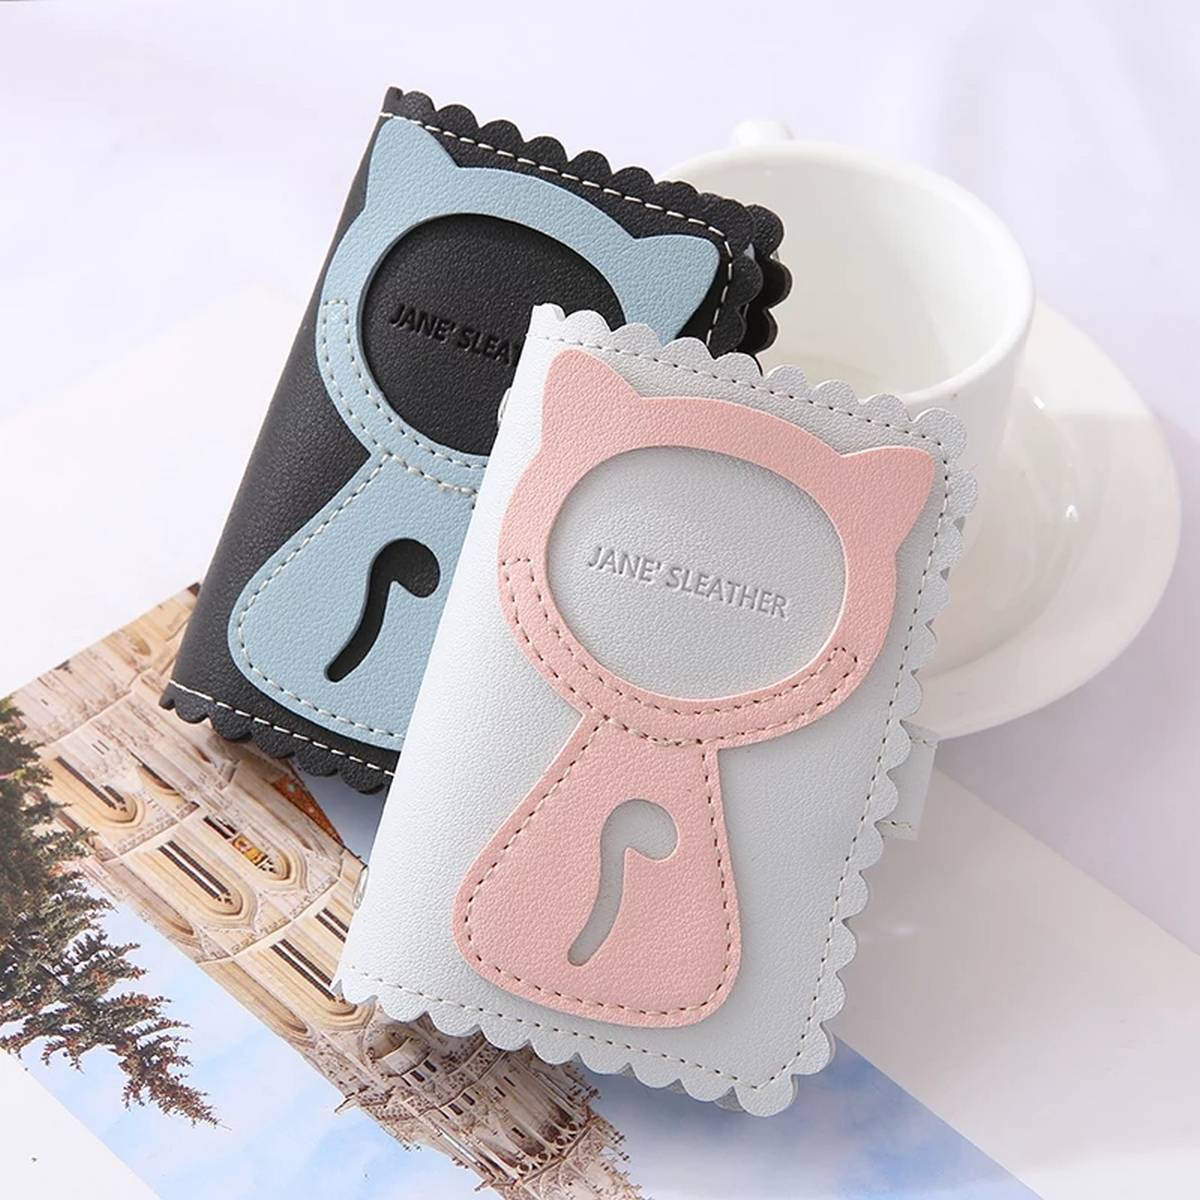 New short mini fashion wallet for girls and womens card holder coin purse.